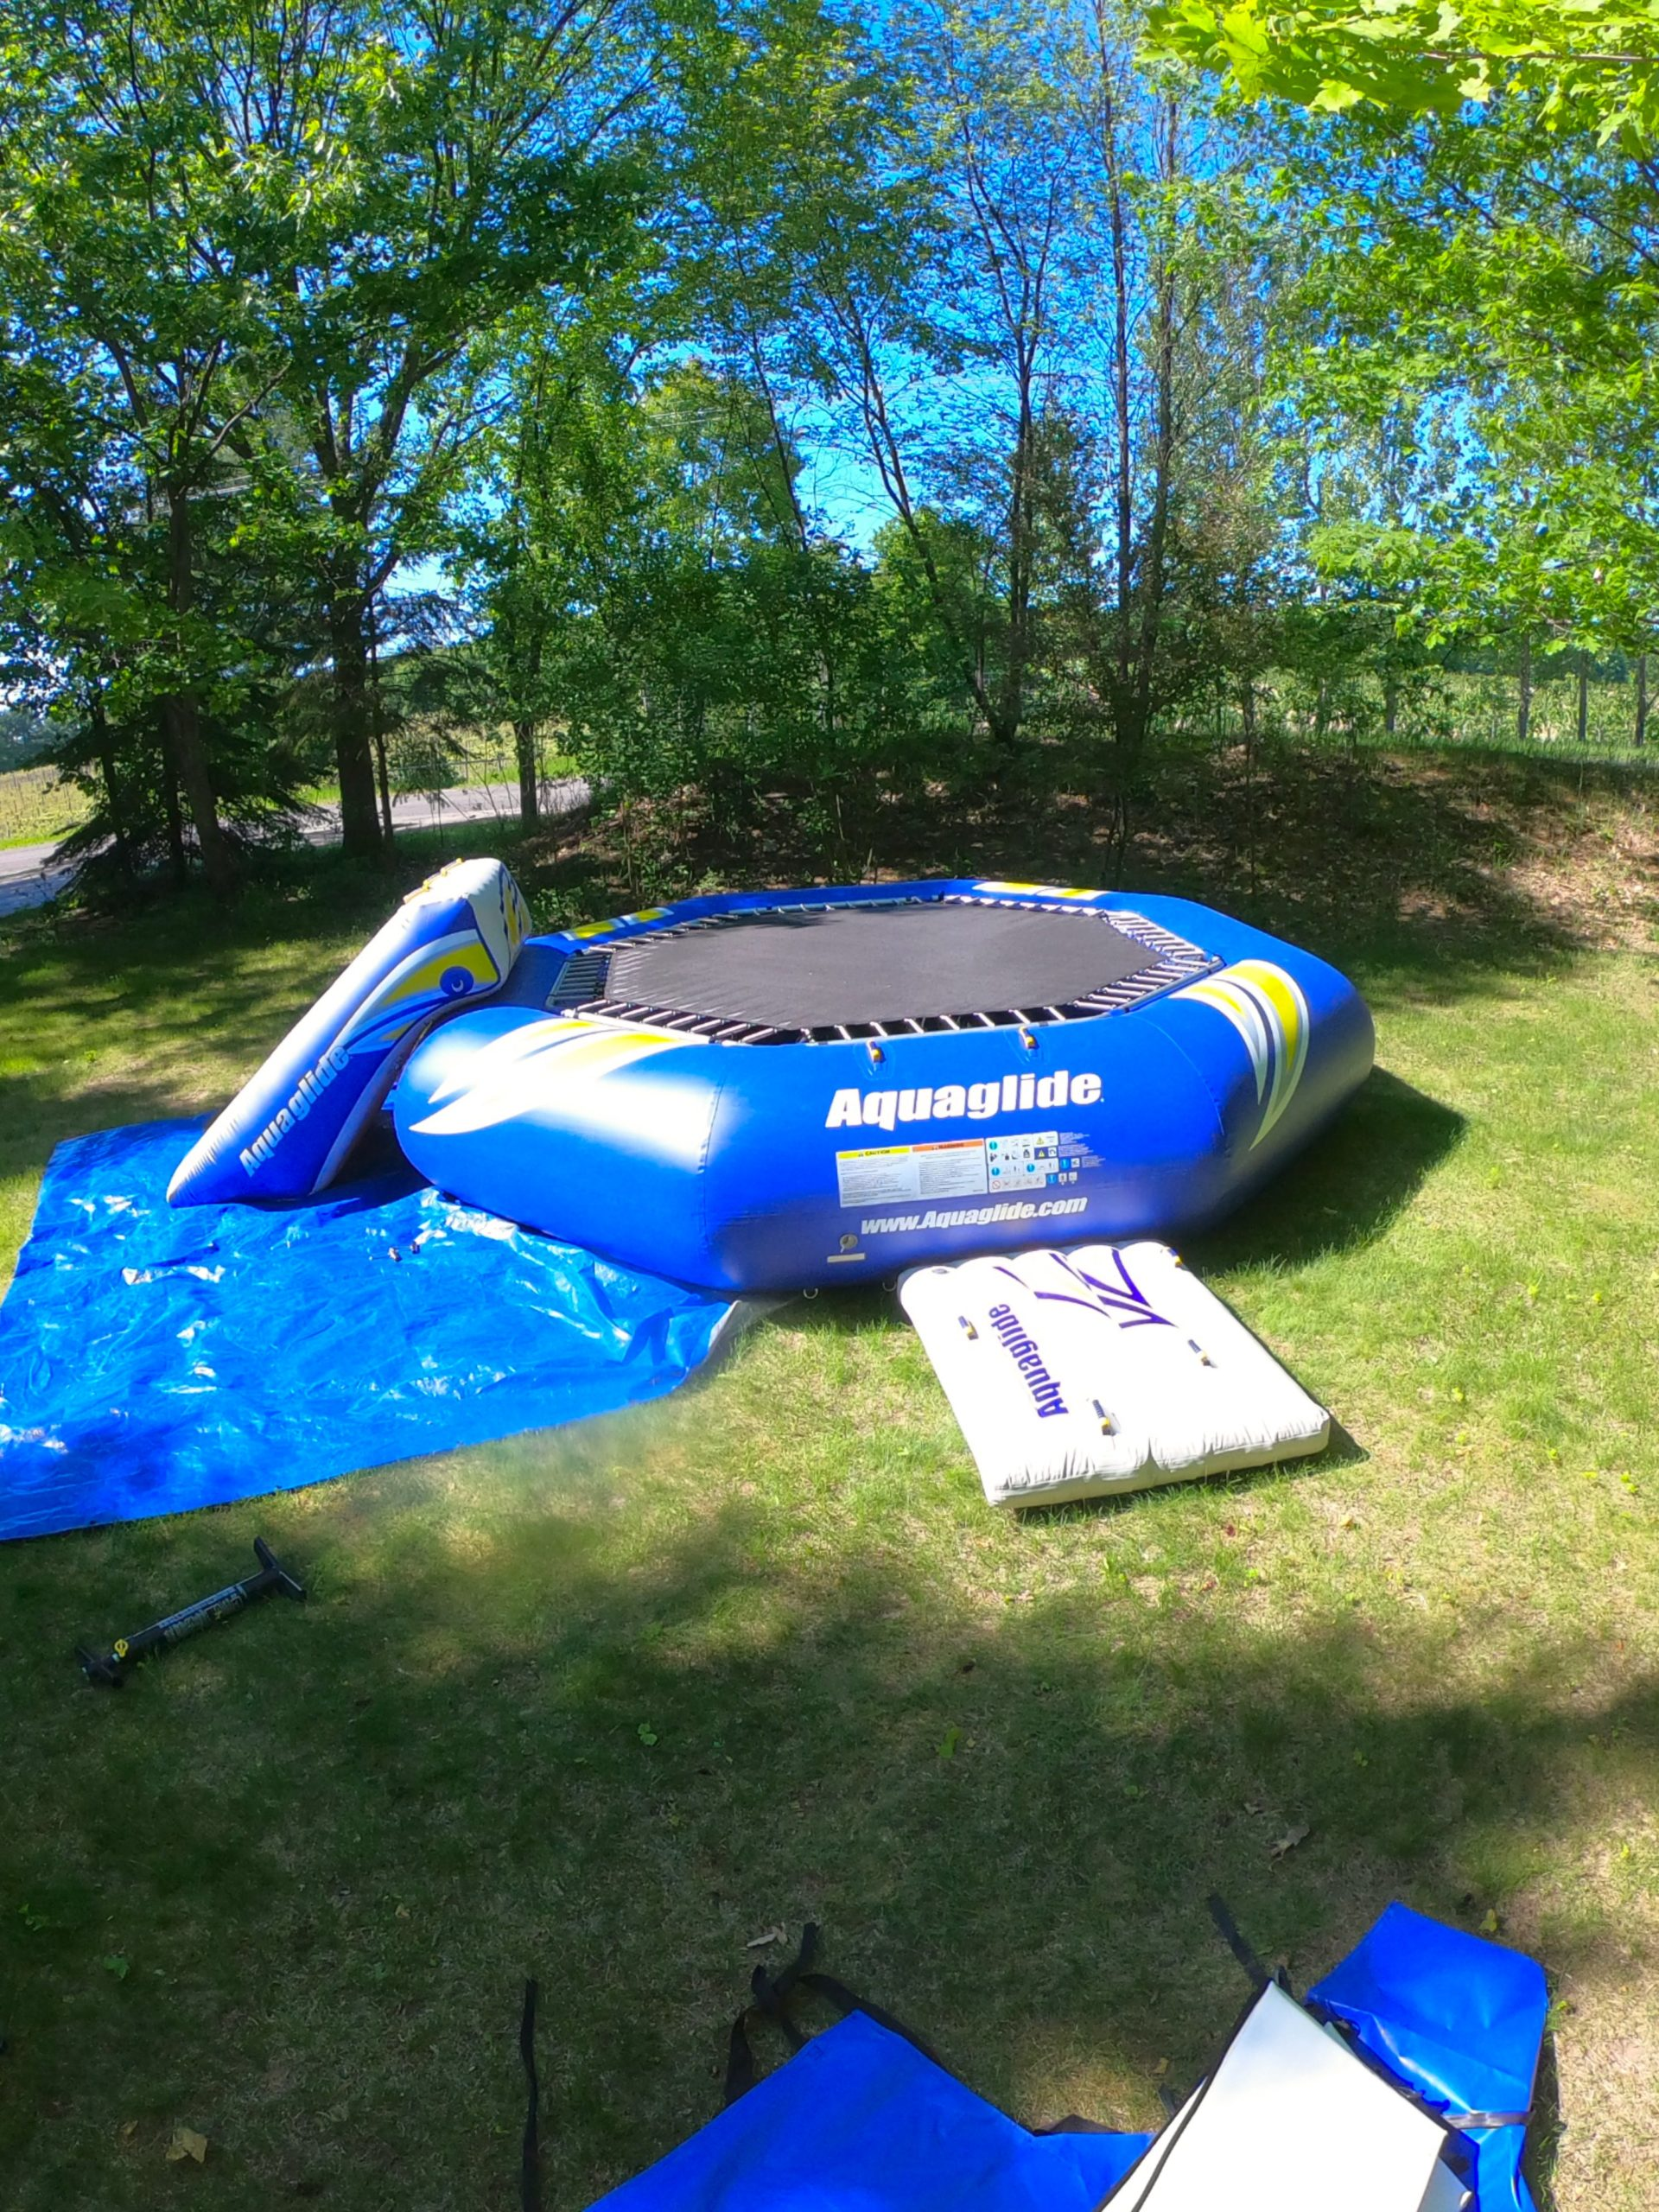 A PlayNorth water trampoline being set up with slide in leelanau county.